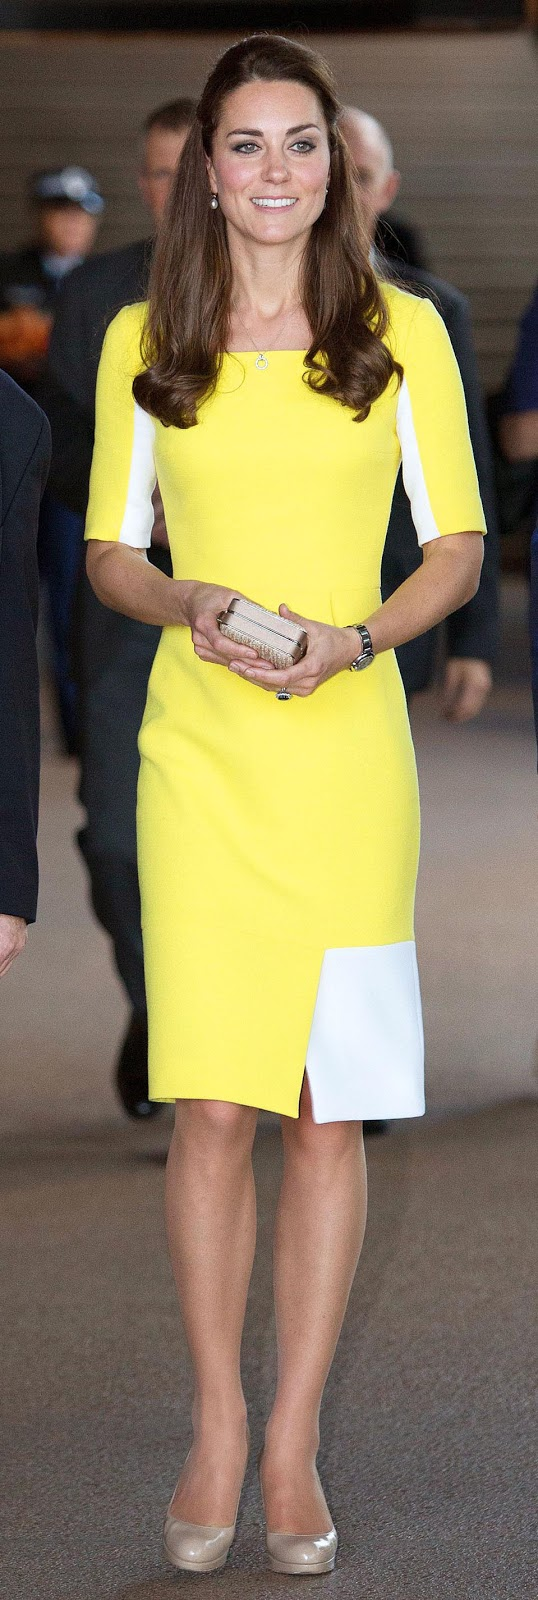 kate-Middleton-yellow-dress-new-zealand-